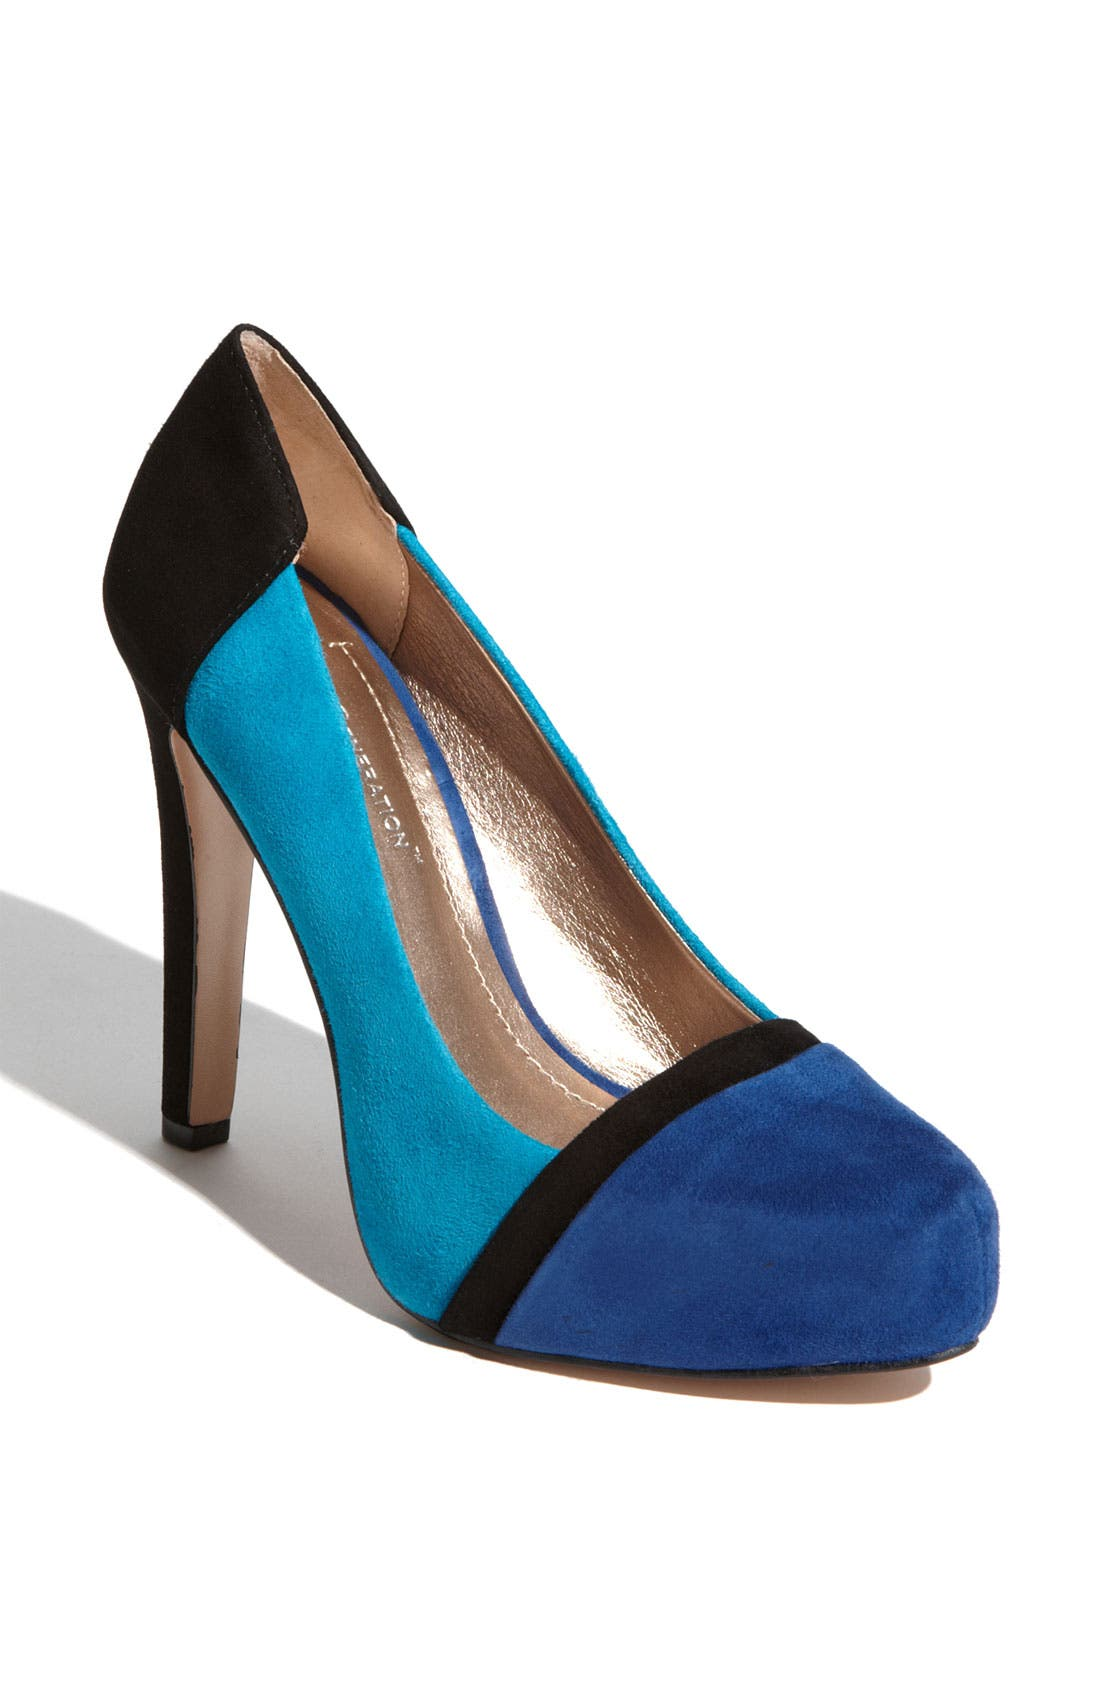 Alternate Image 1 Selected - BCBGeneration 'Perries' Pump